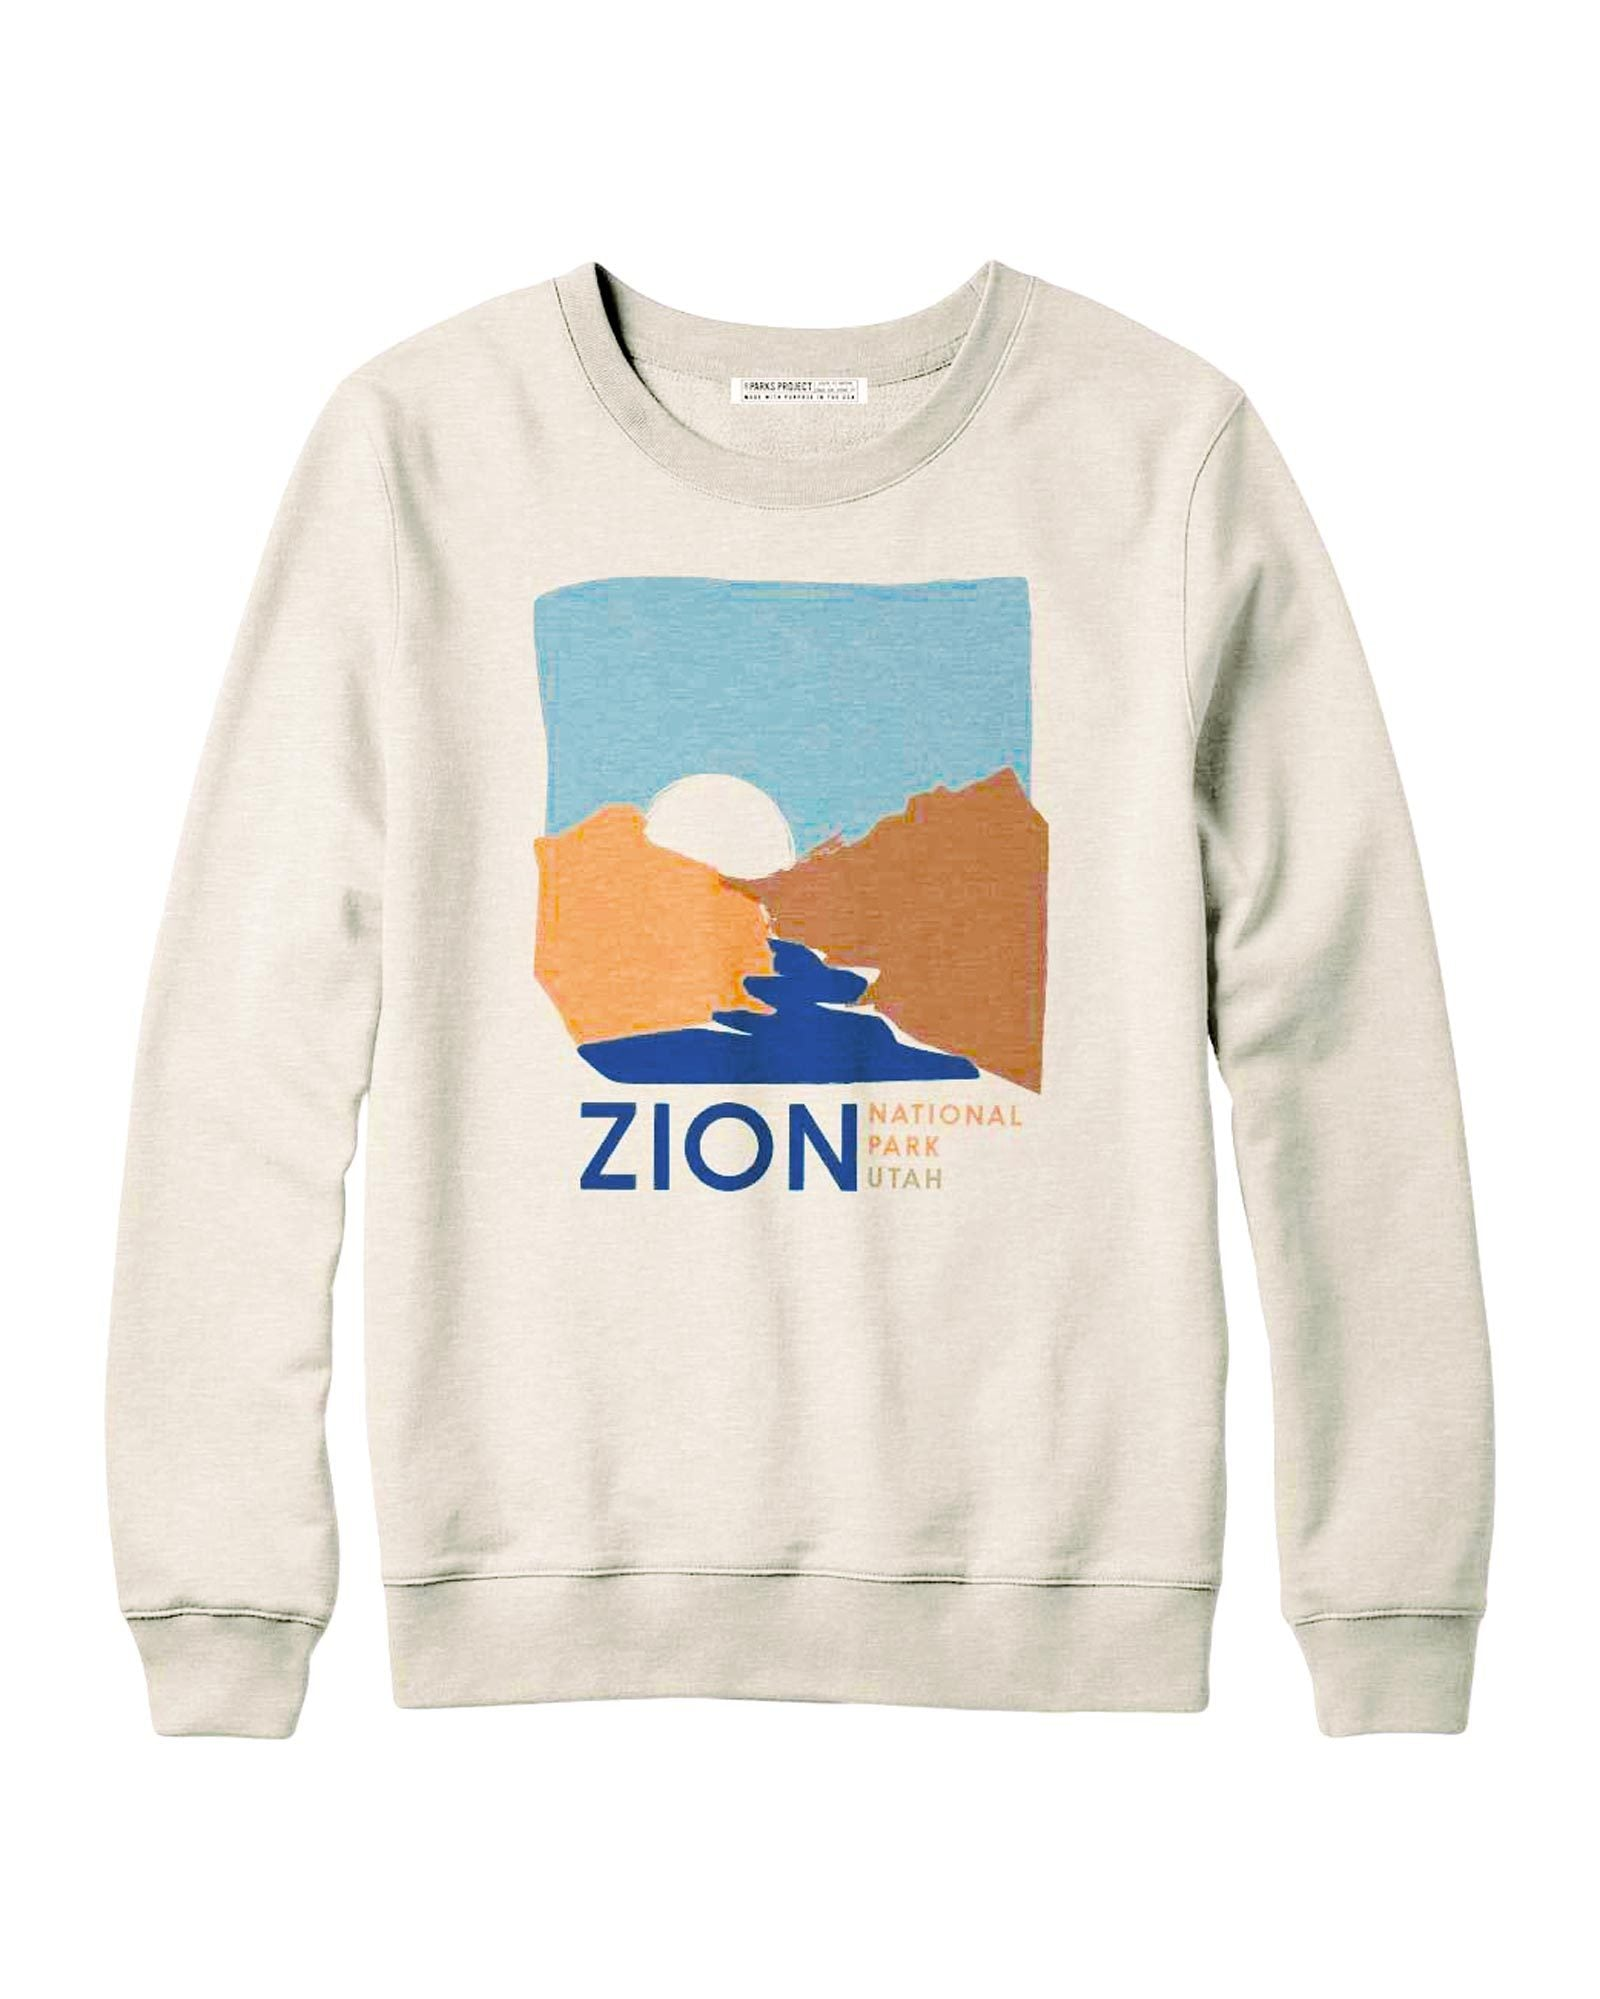 Zion Watercolor Fleece Sweatshirt | Parks Project | National Parks Gifts